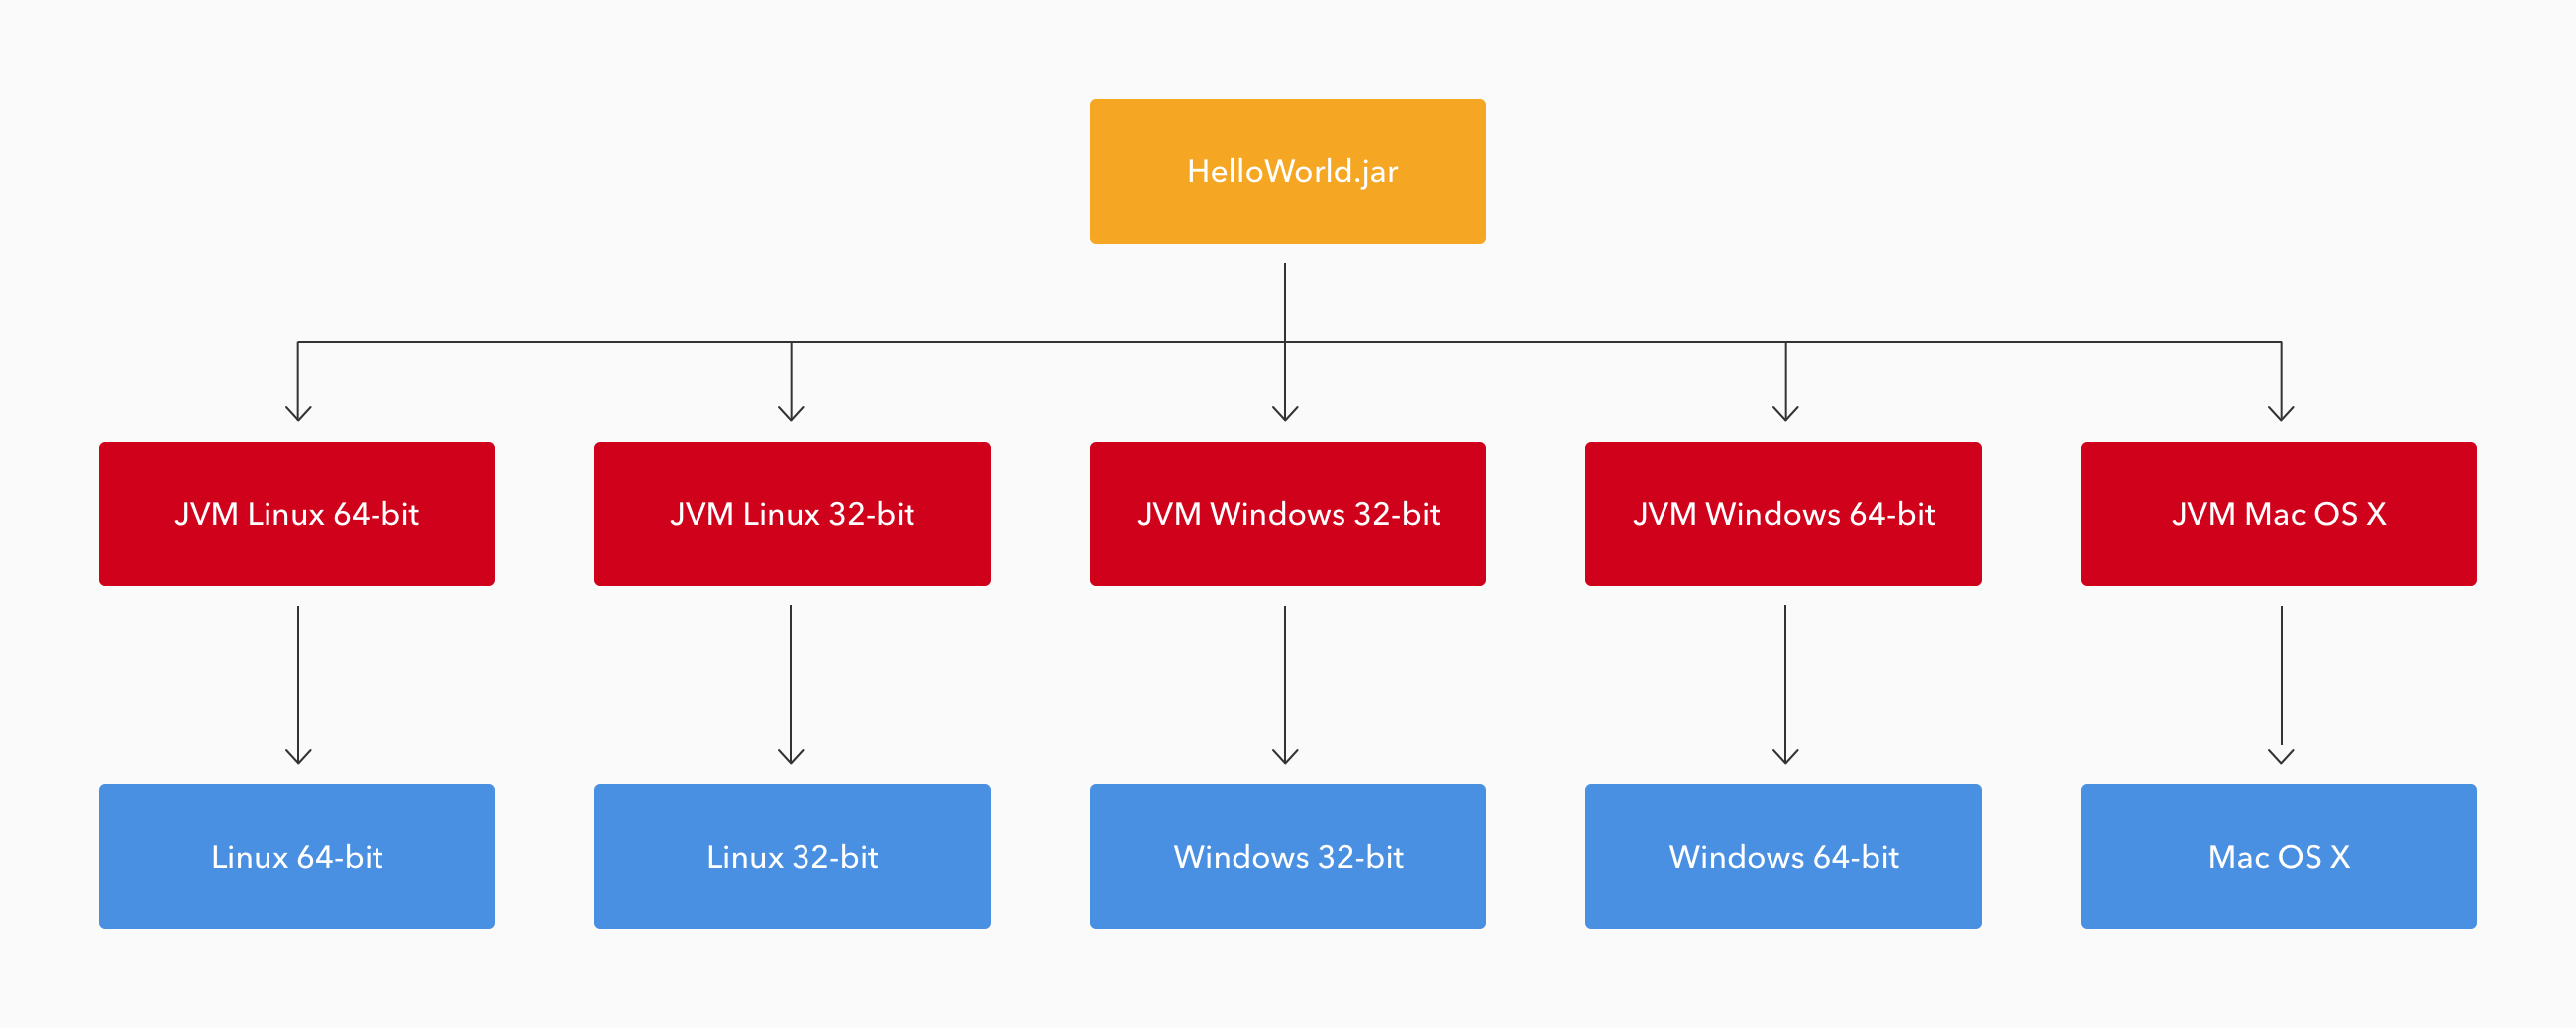 JVMs are specific to each OS and architecture